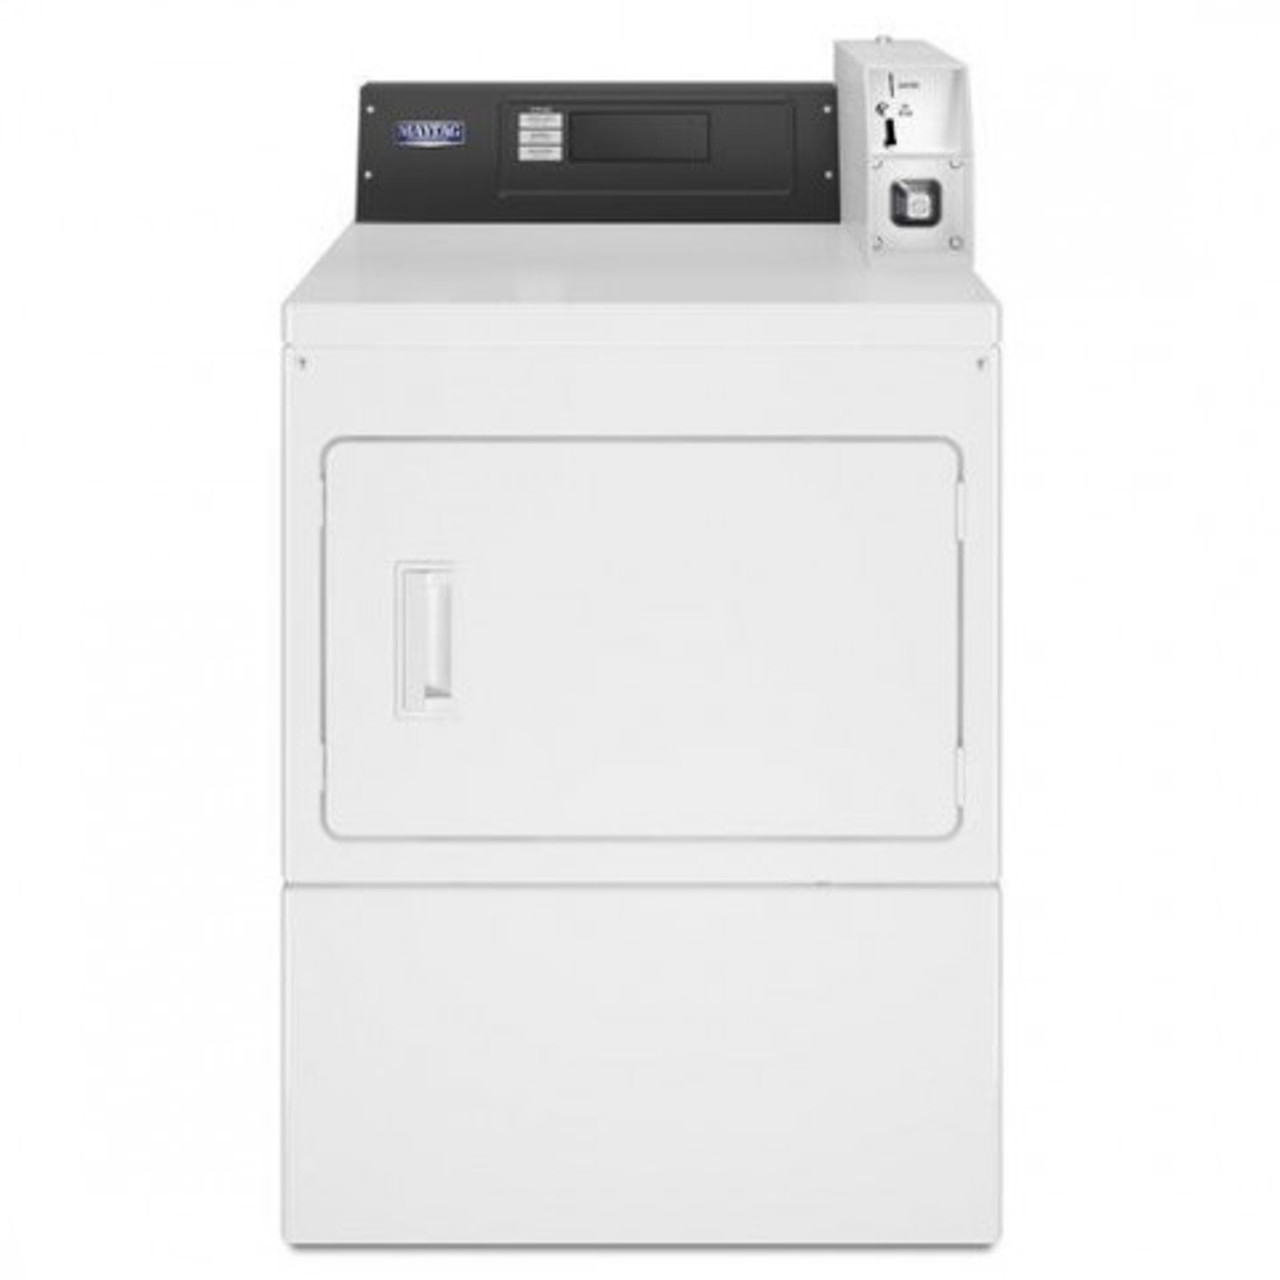 Maytag MDE20PD - Maytag Commercial Super-Capacity Electric Dryer Intelligent Controls - Coin Drop